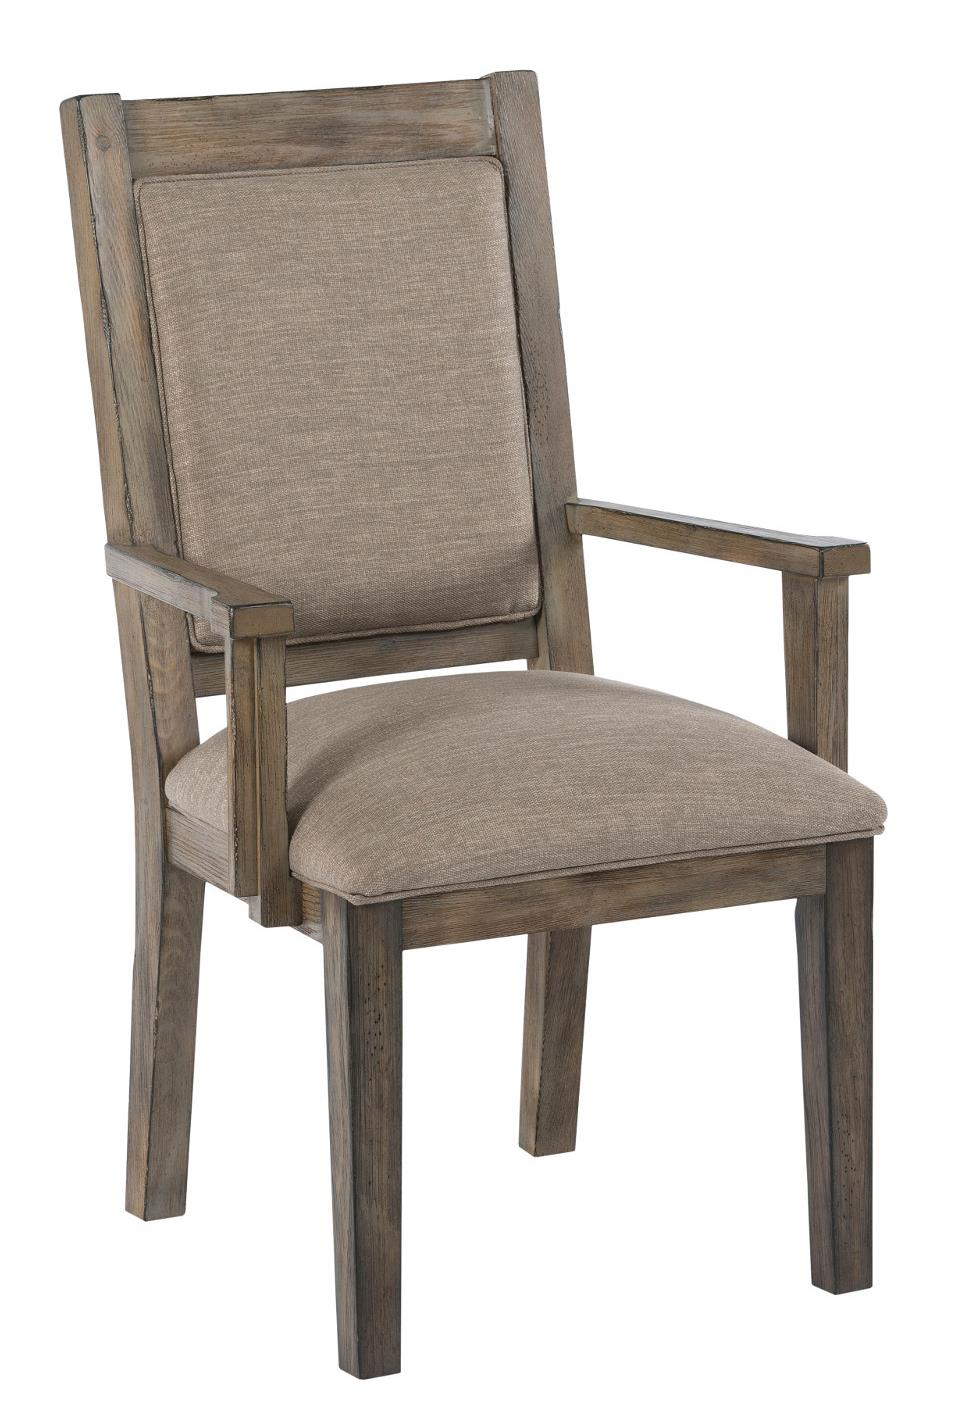 Foundry Upholstered Arm Chair by Kincaid Furniture at Northeast Factory Direct